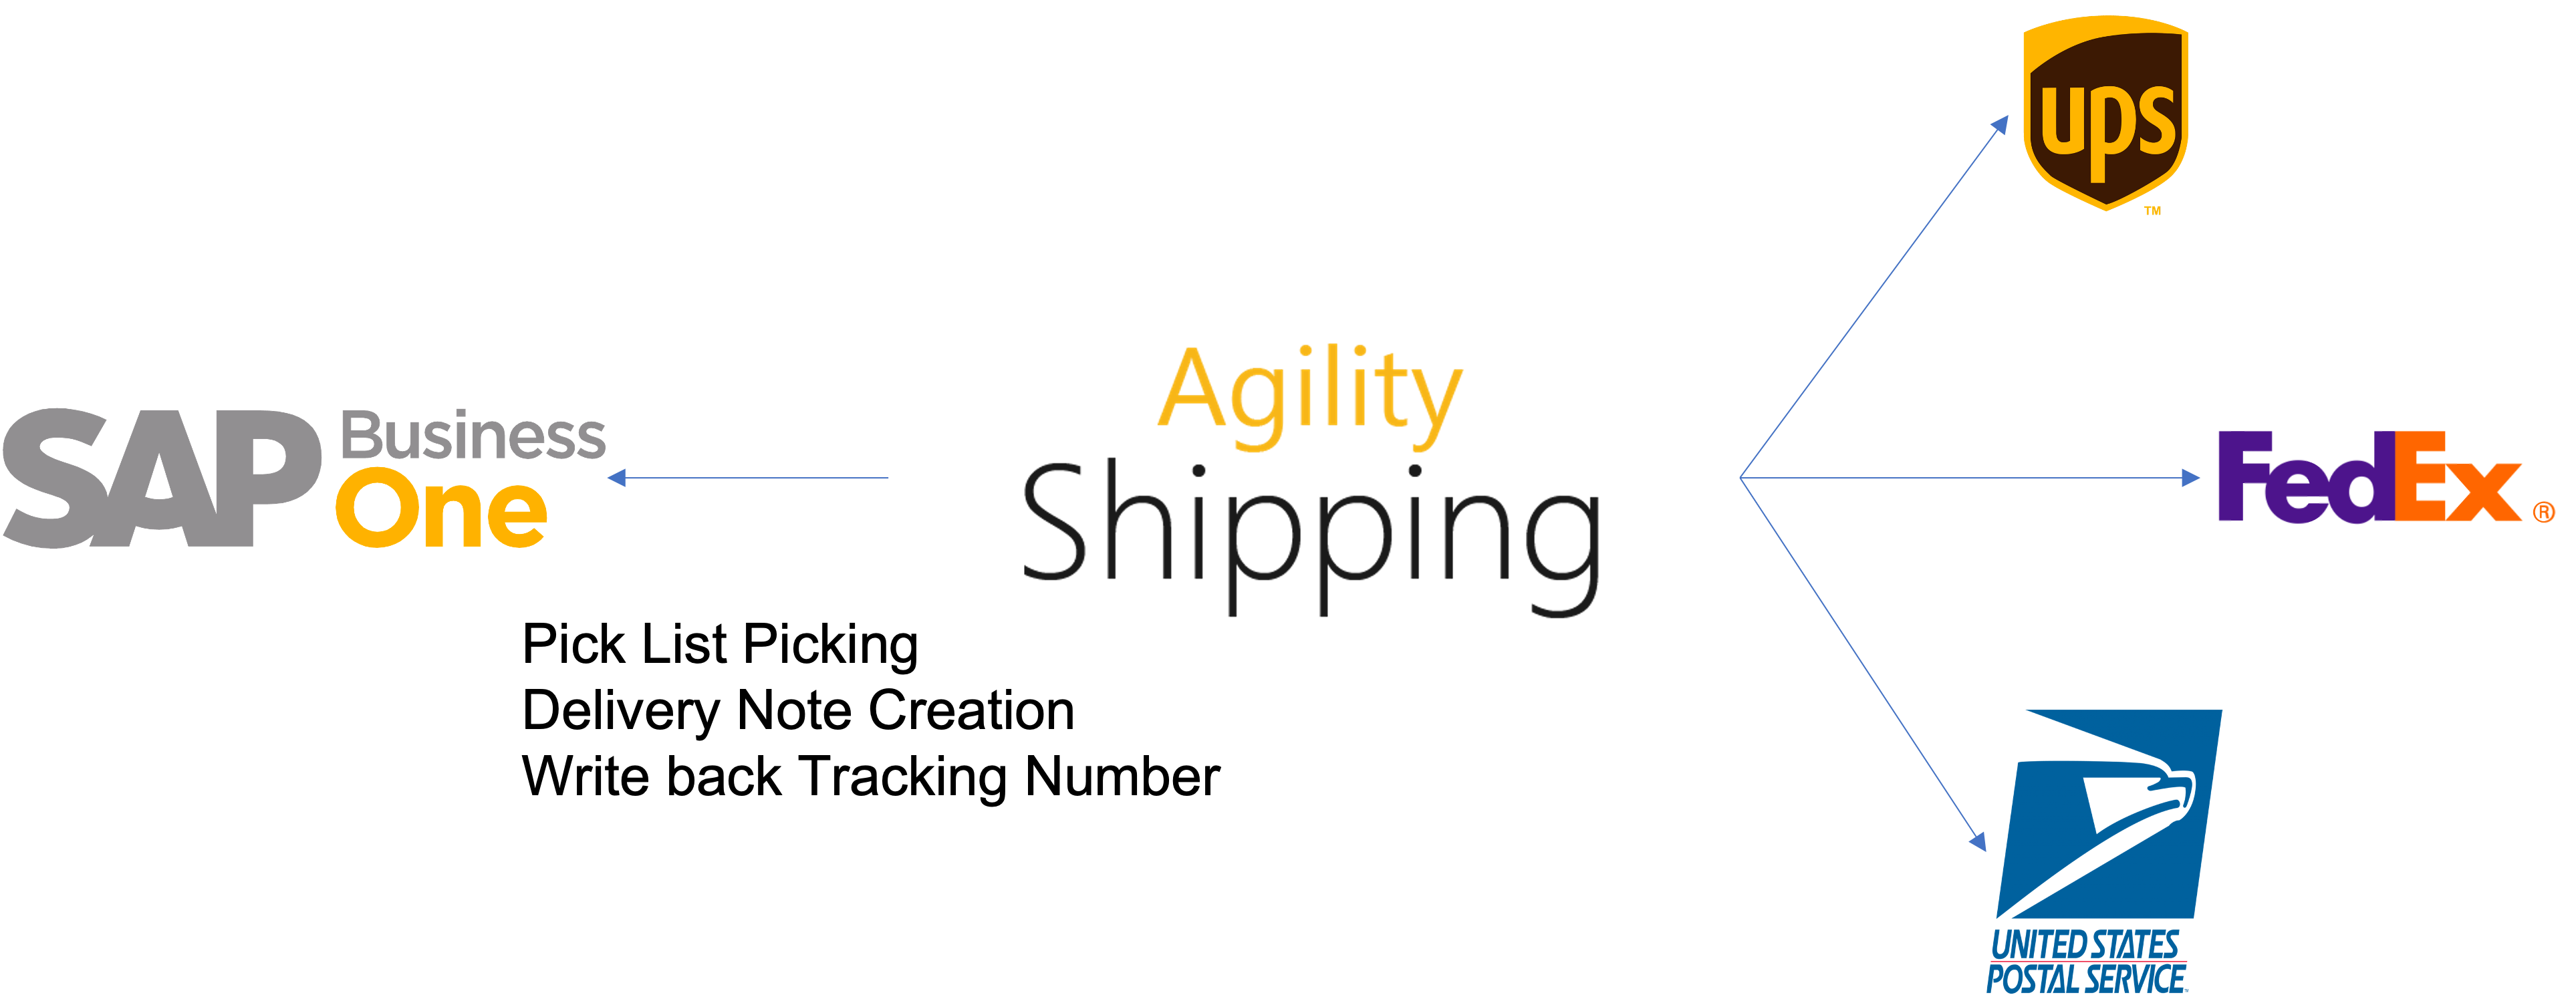 Agility Shipping Process